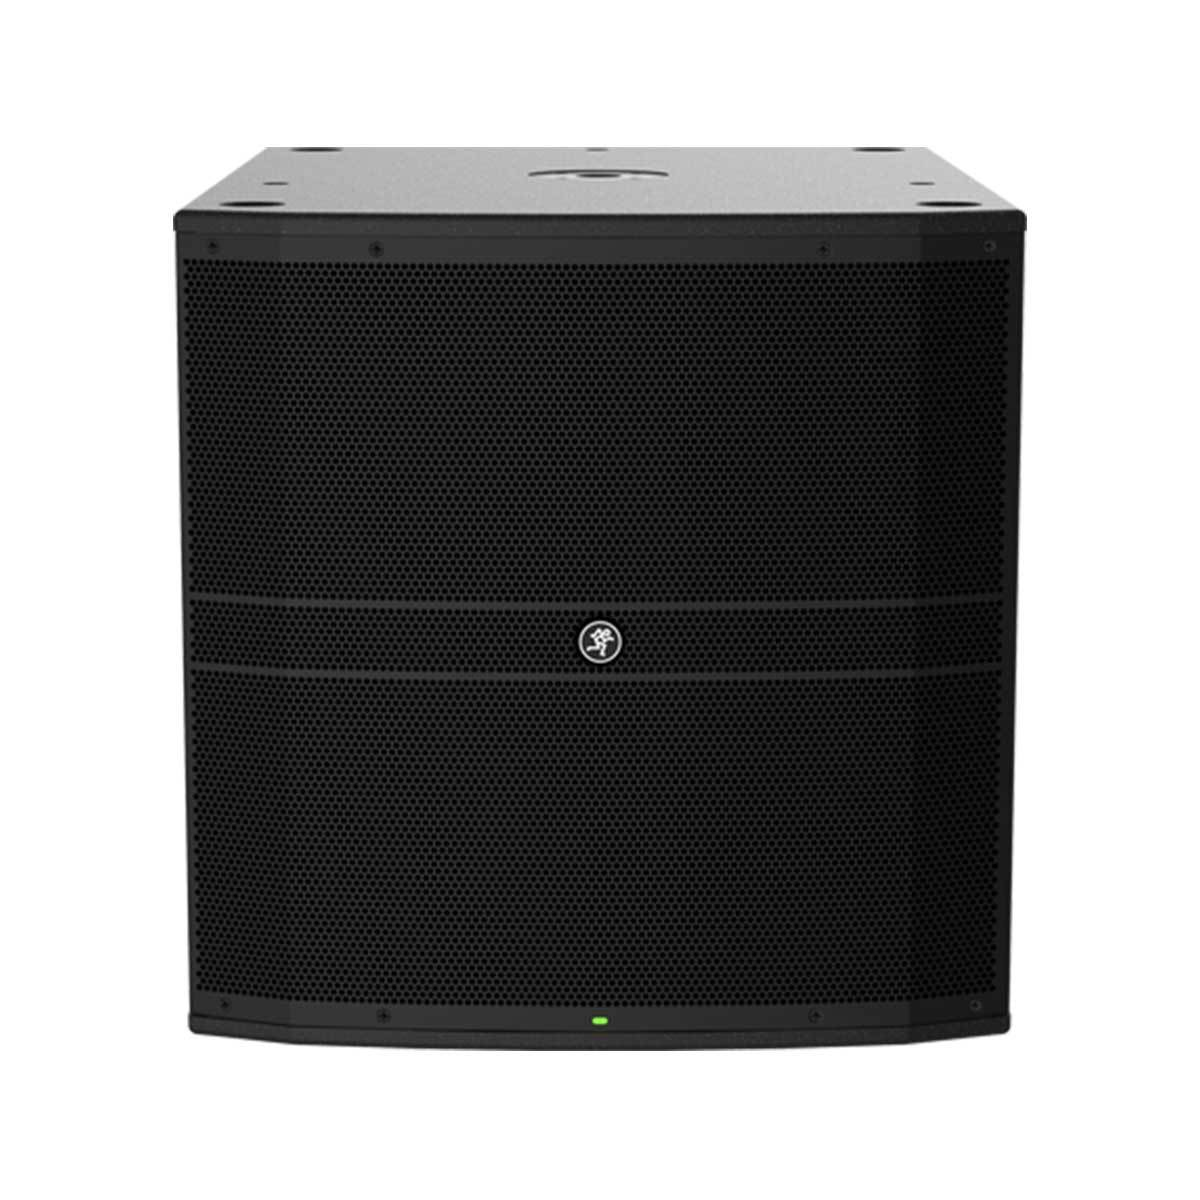 "Powered PA Sub - Mackie DRM18S 2000W 18"" Professional Powered Subwoofer"